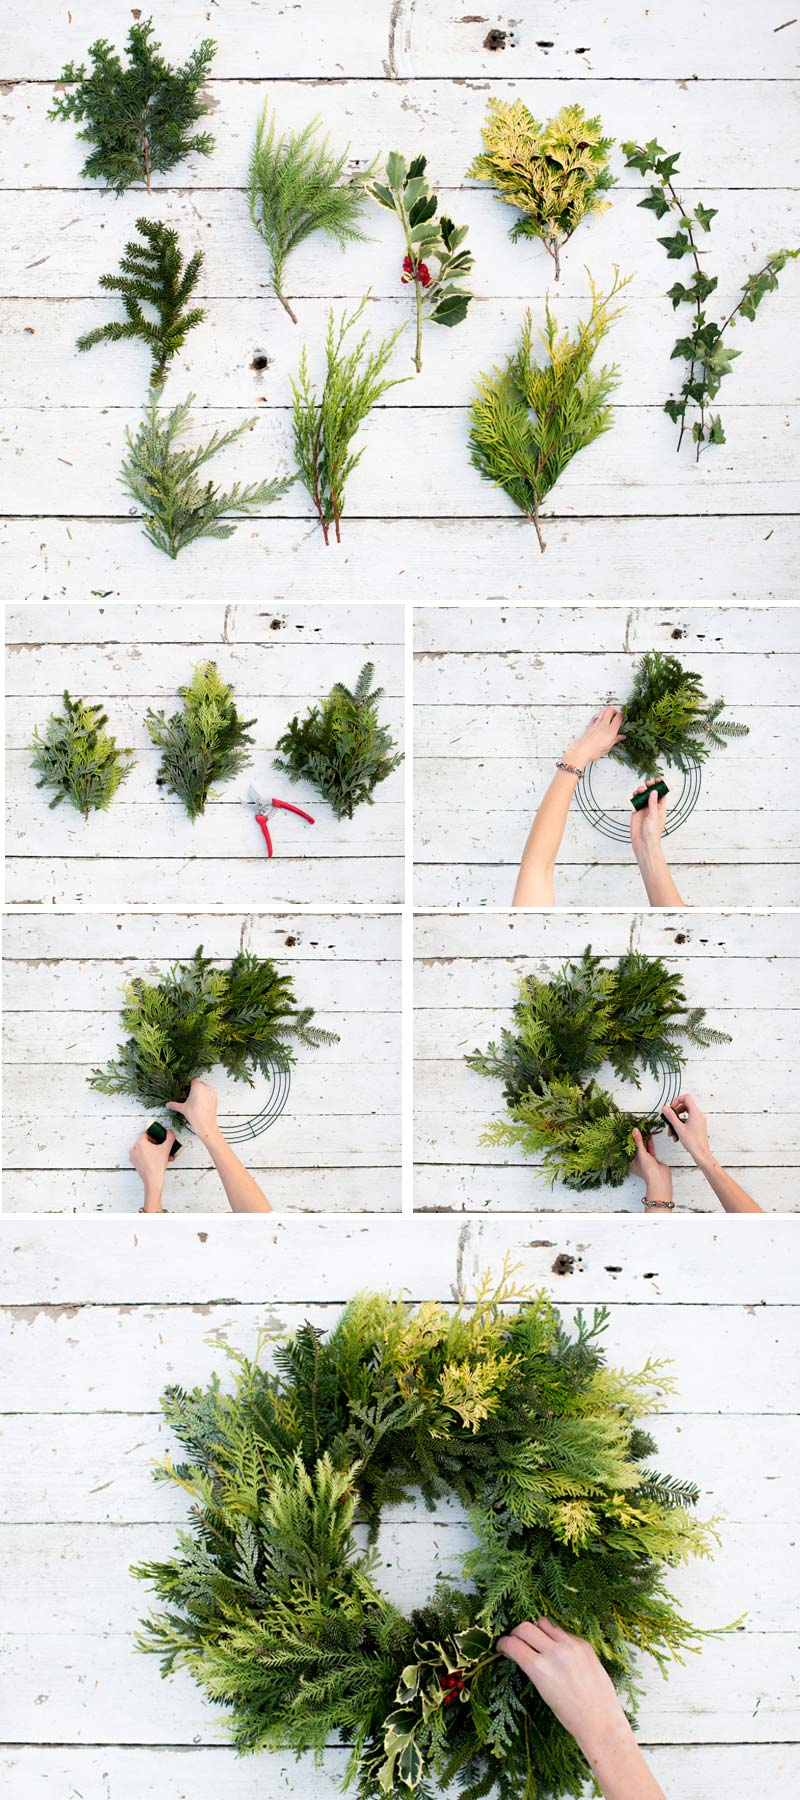 How to decorate a small living room for Christmas - FORAGED EVERGREEN WREATH #smallspaces #tinyhouseliving #smallspaceliving #smallroomdecor #christmasdecorideas #DIYChristmaswreath